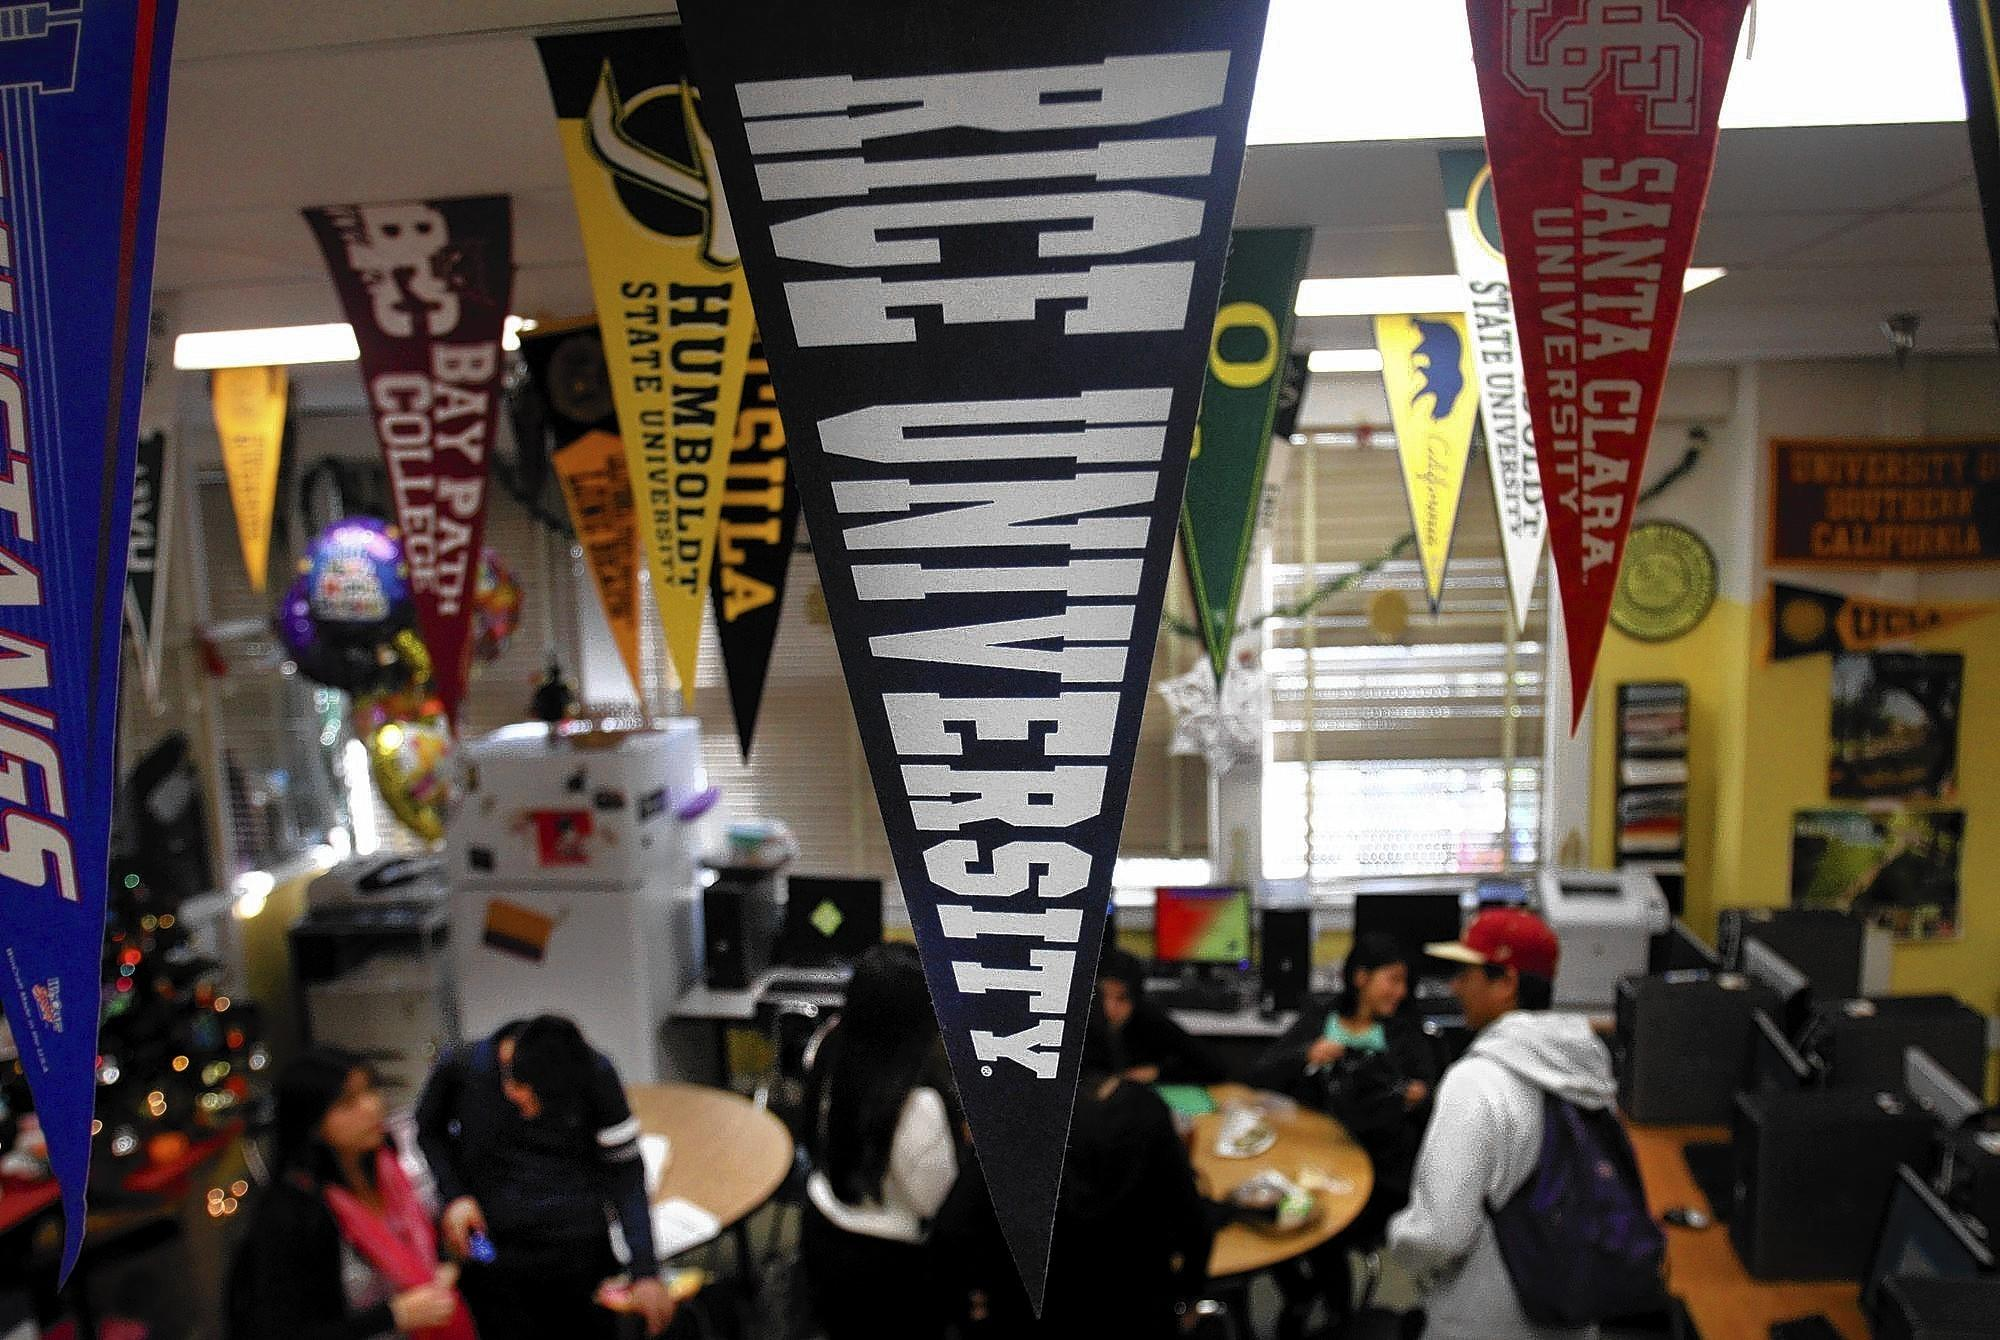 Students gather in college counselor Teresa Carreto's room at Roosevelt High in L.A.'s Boyle Heights, one of the area campuses receiving relatively few visits from college counselors.